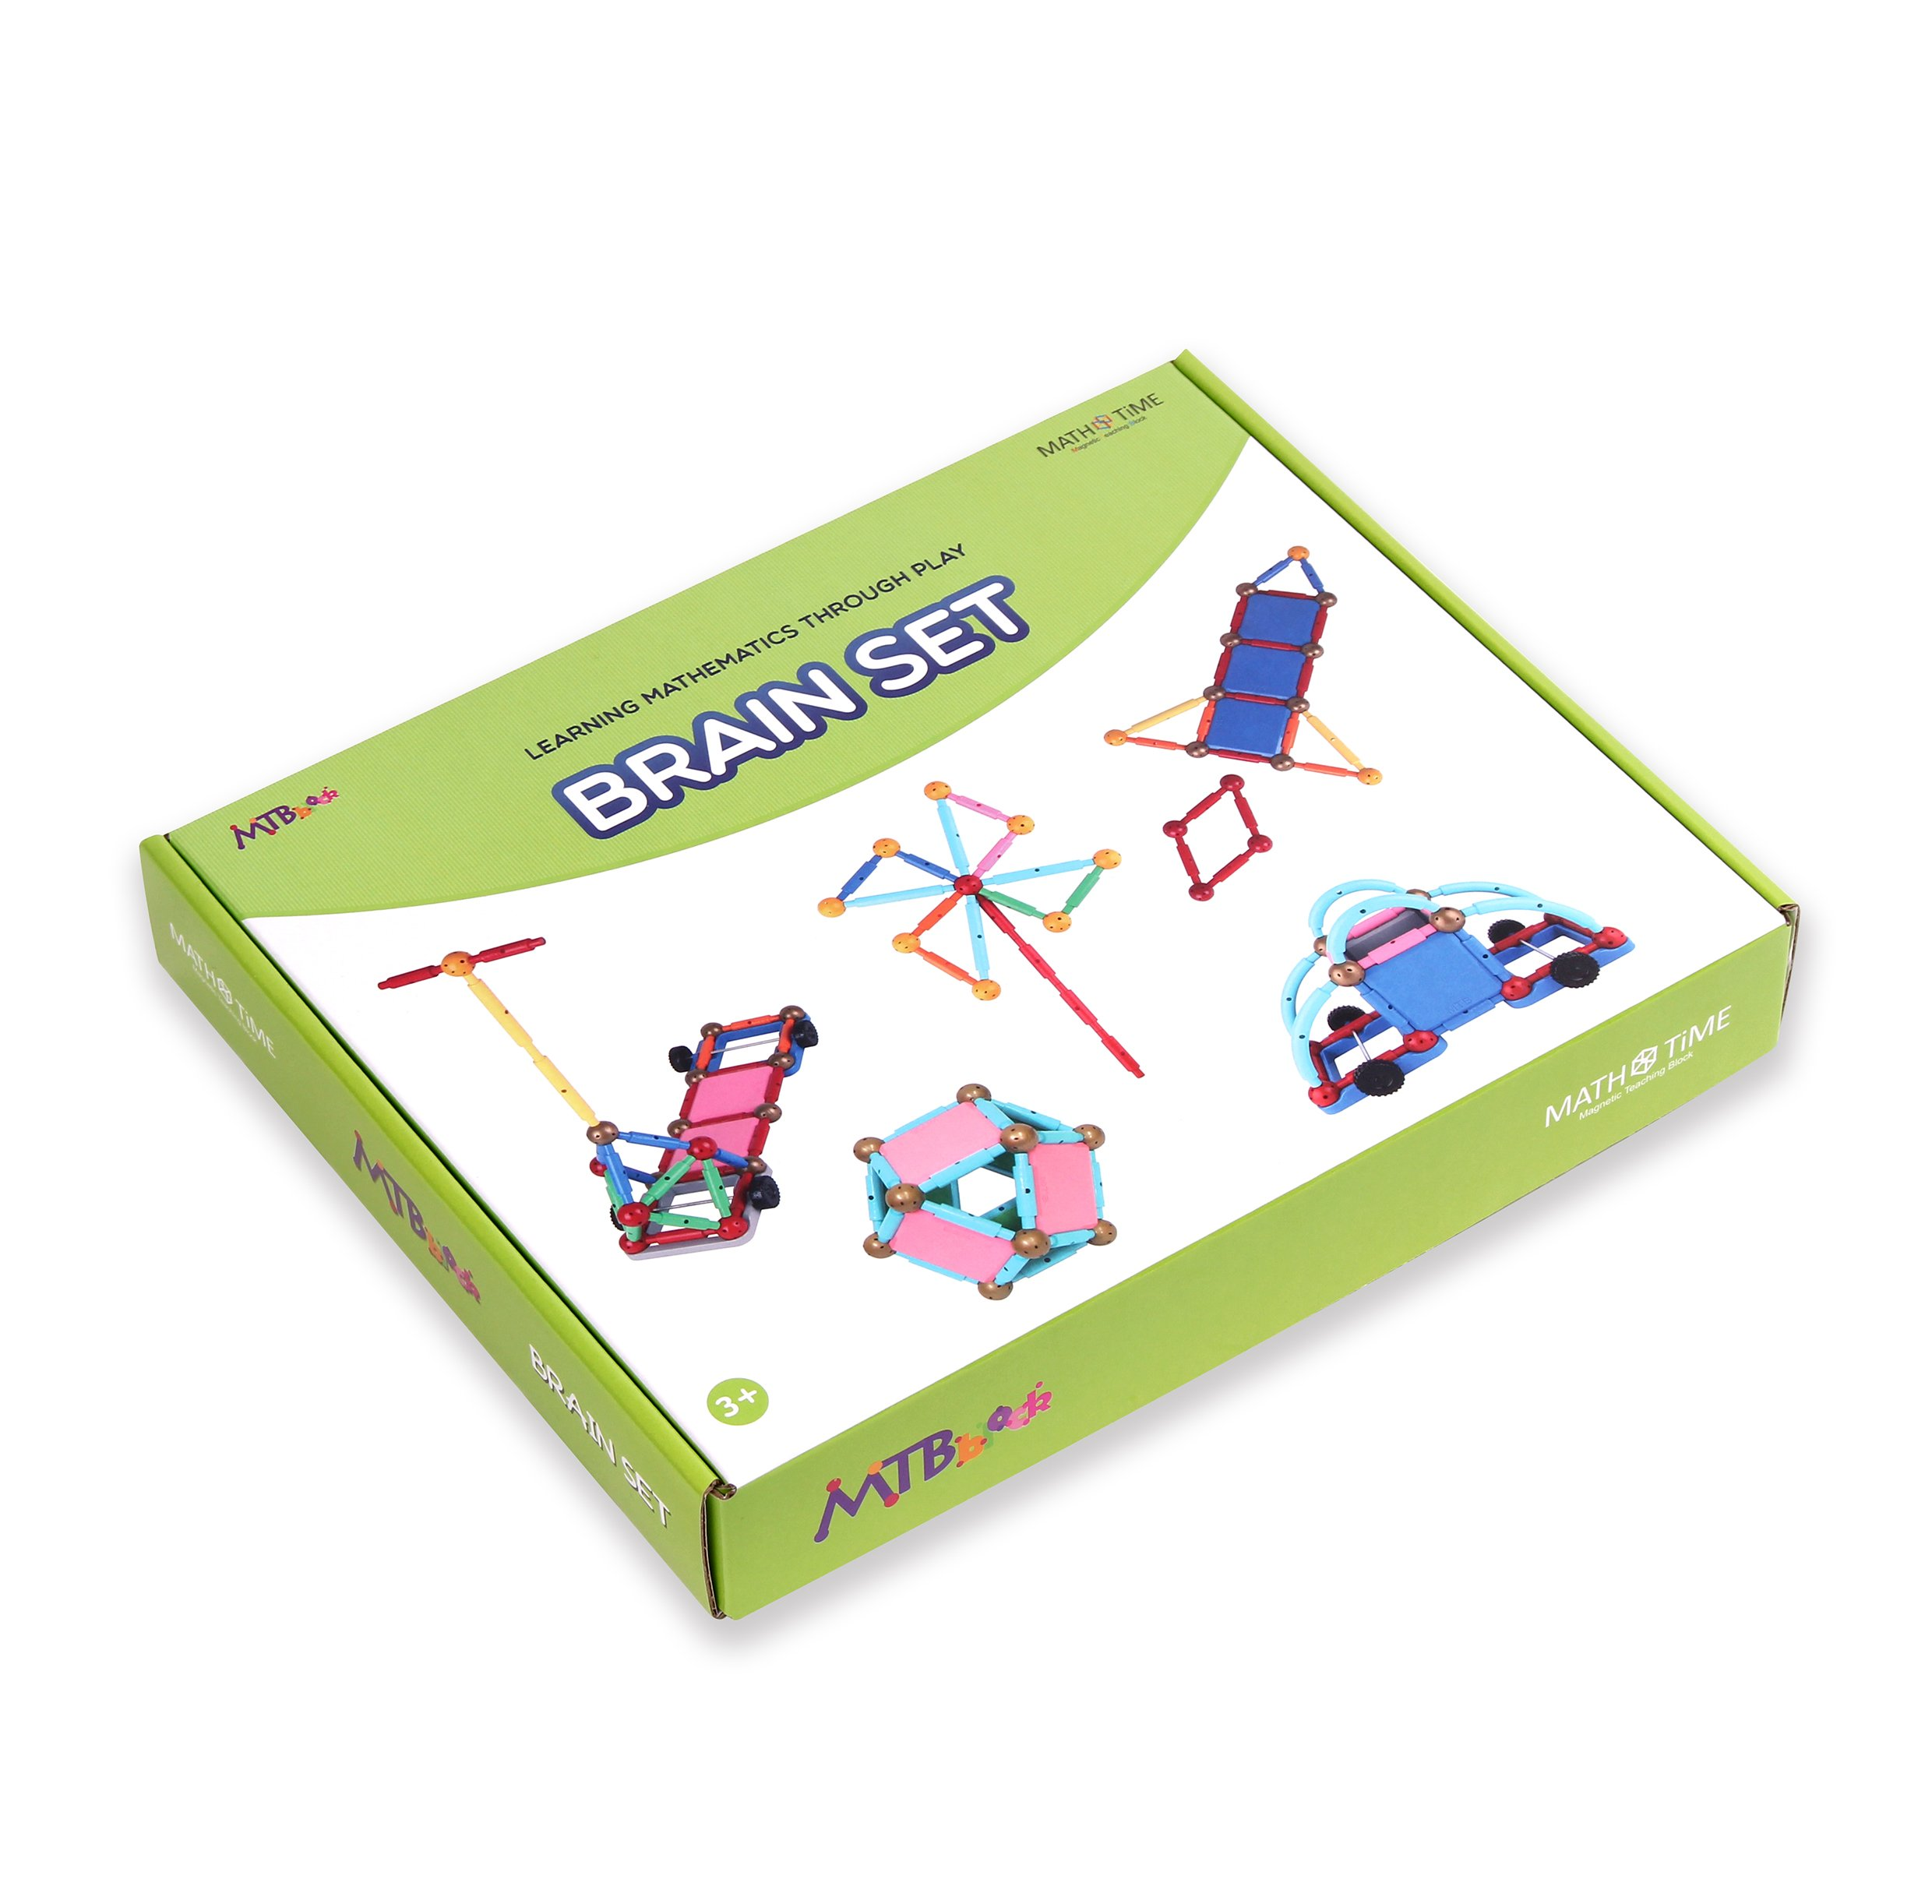 MTBblock [Mathtime Educational Toy DIY Toy and STEM Toy for Children l Creative Learning of Mathematical Figures Using Magnetic Block, Brain Set